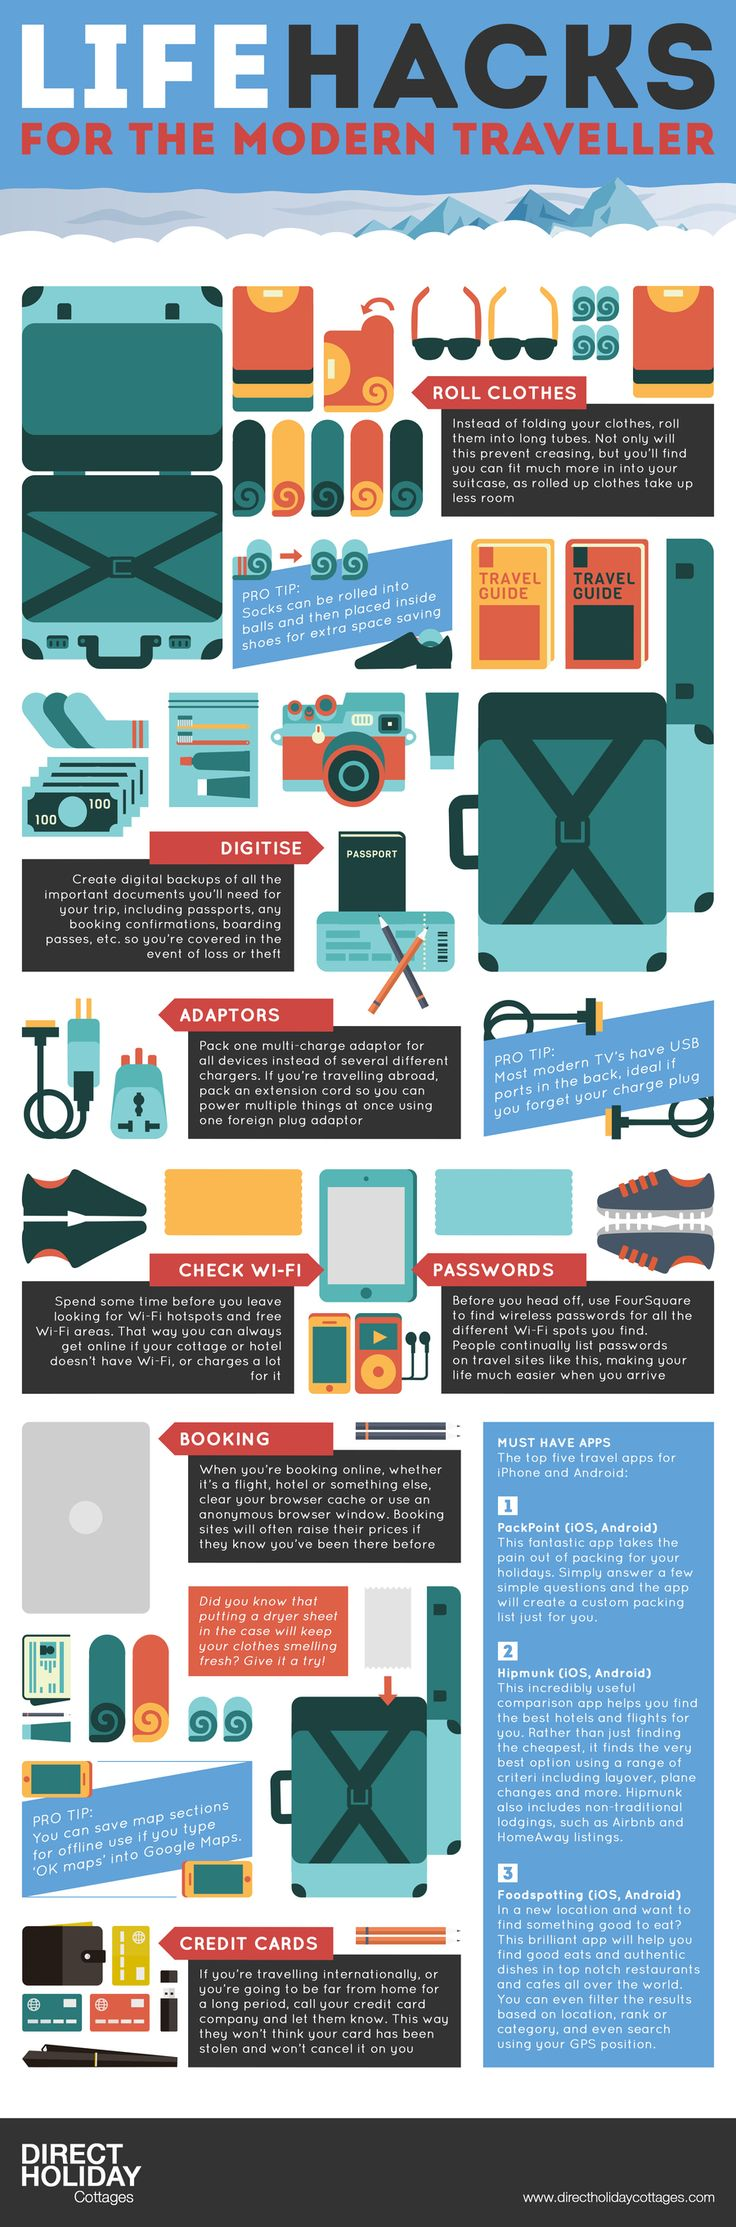 Life Hacks for the Modern Traveller #infographic #Travel #Apps #Hacks #TravelHacks